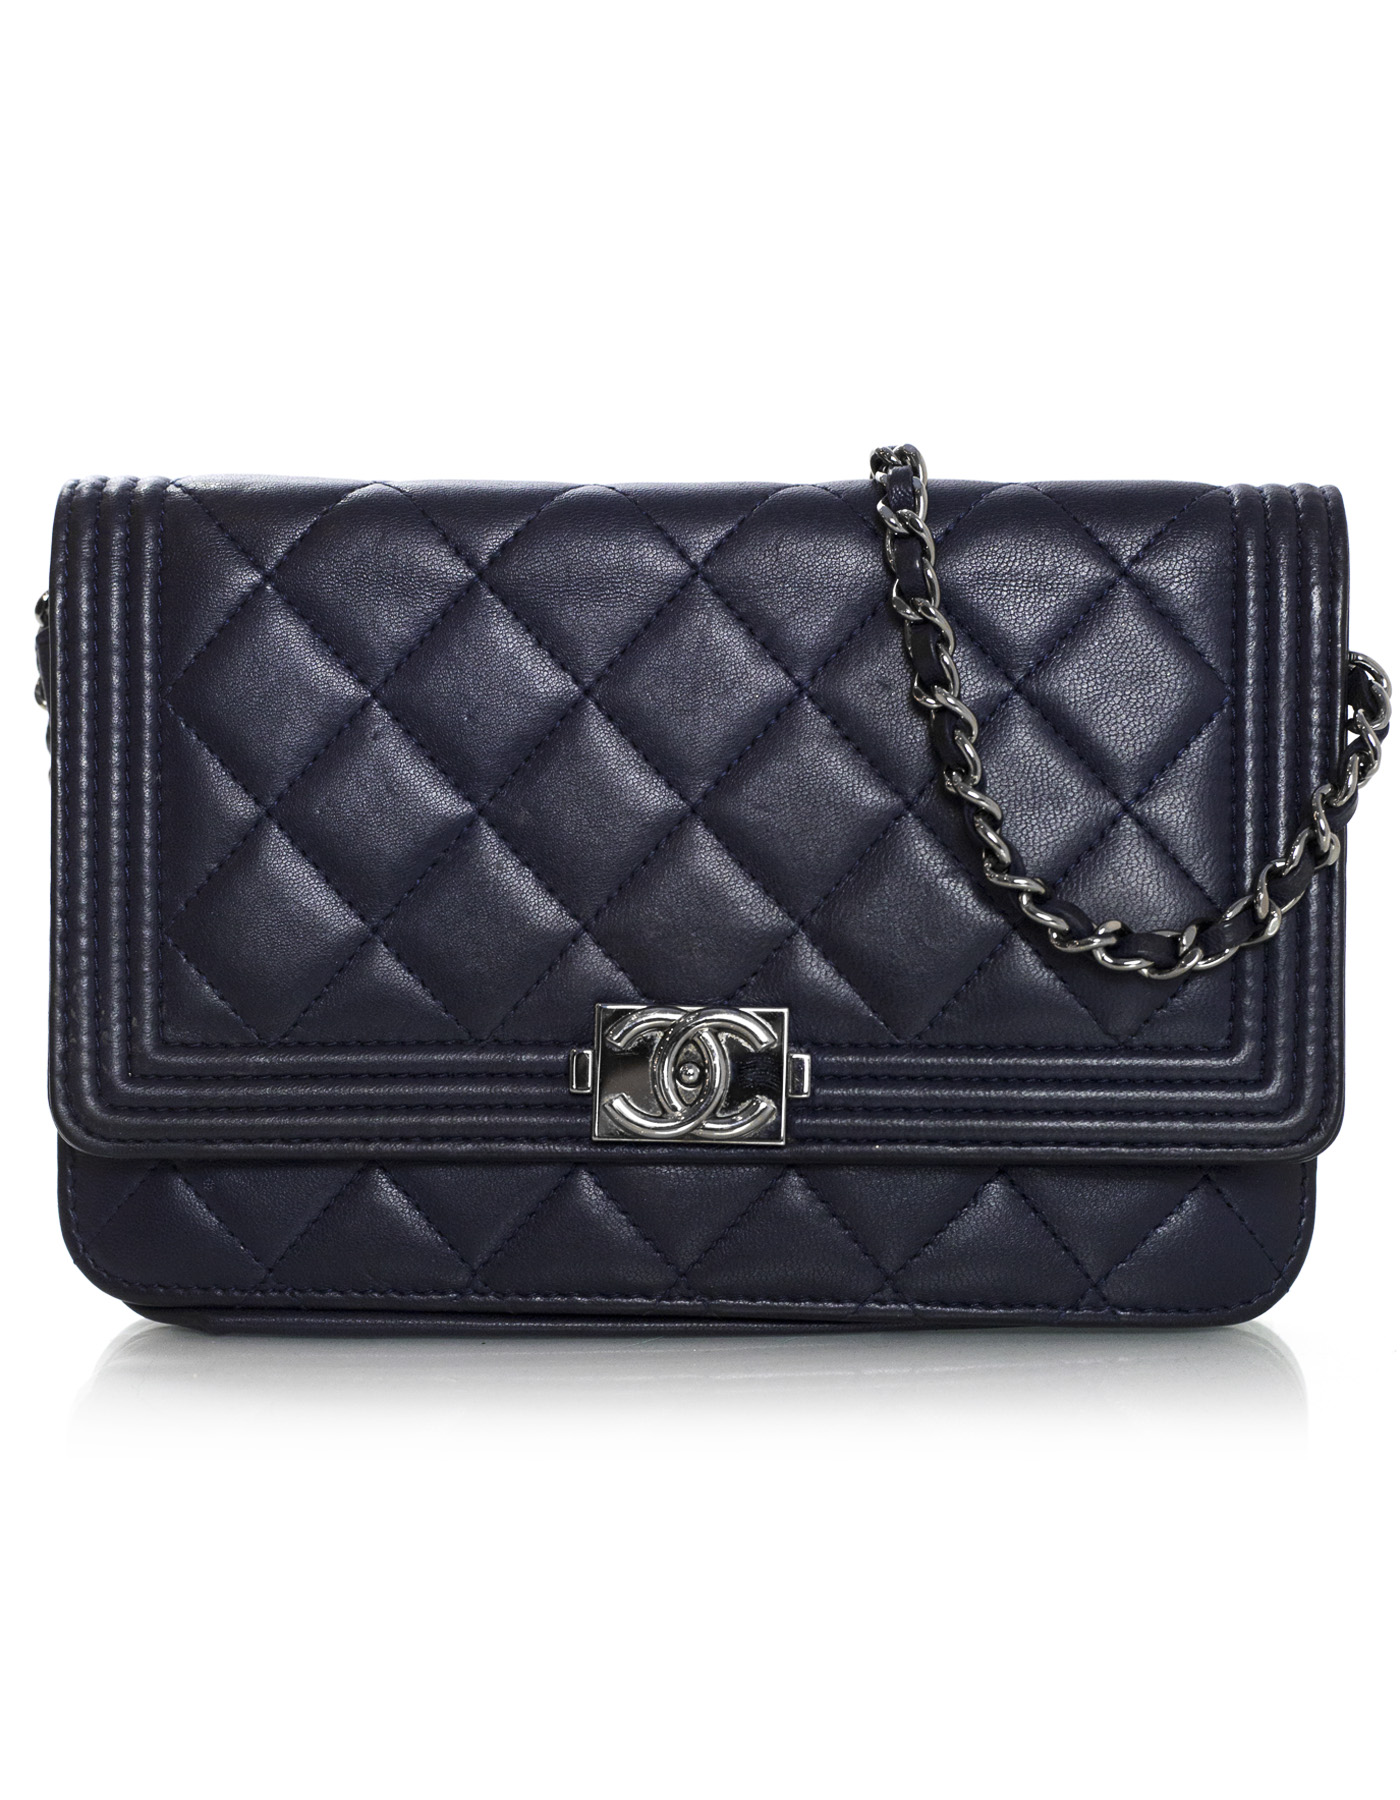 CHANEL WOC lambskin leather navy crossbody 100-11593 4.jpg